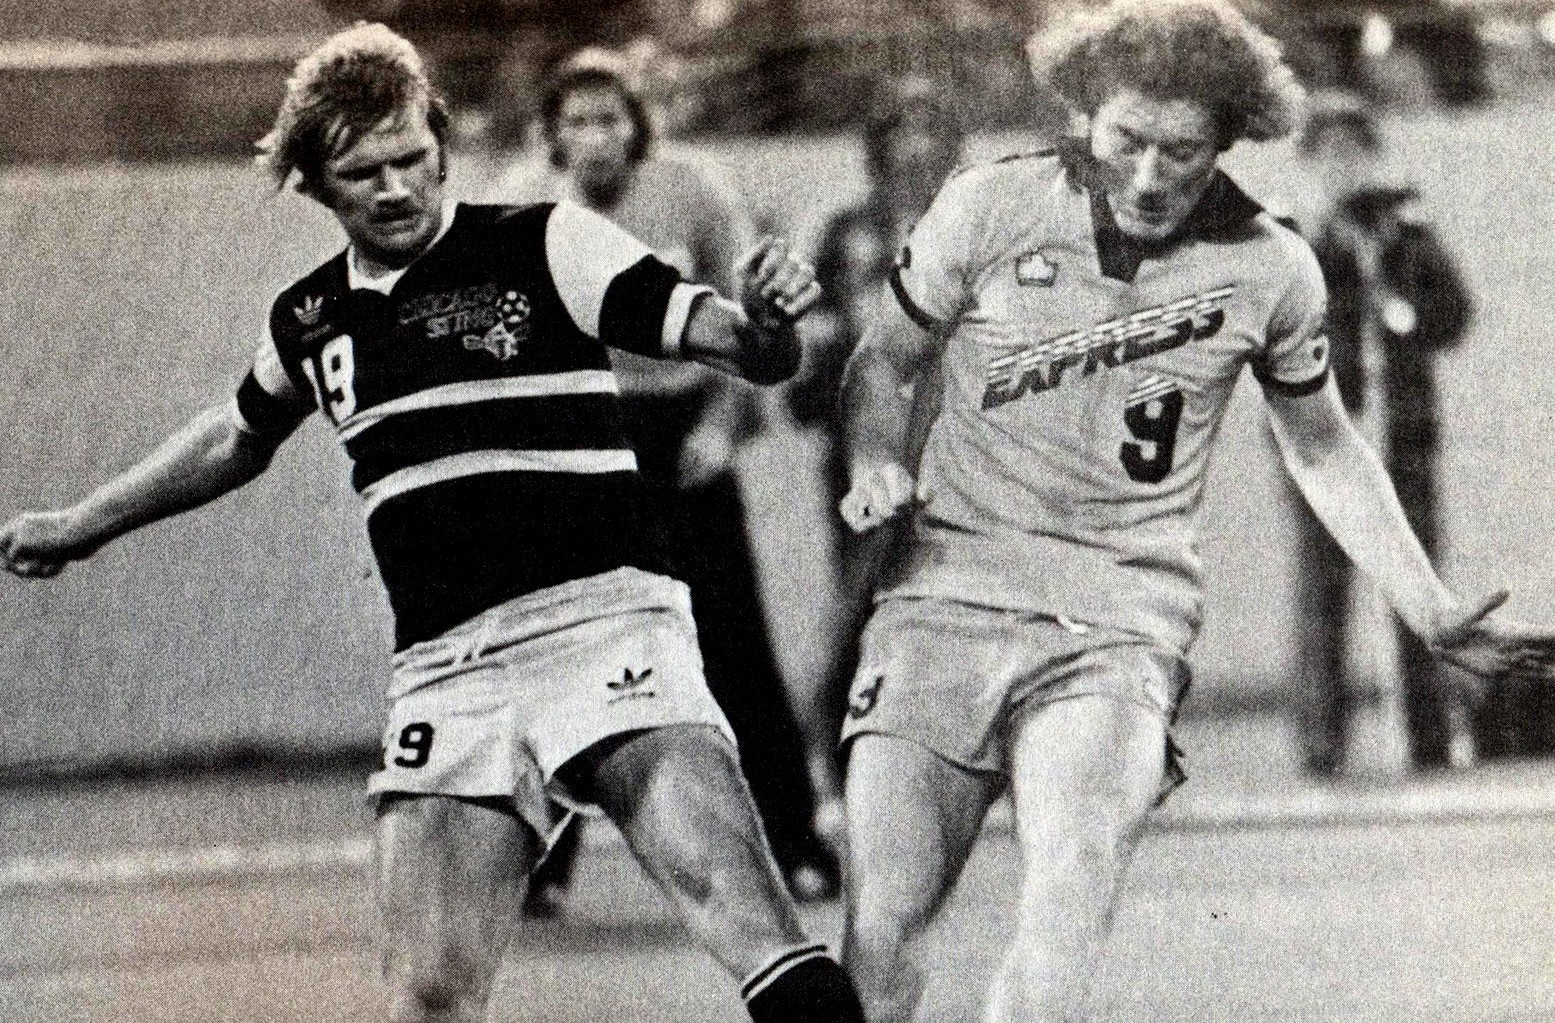 A young Alan Brazil in action for Detroit Express on the plastic in the late 1970s.